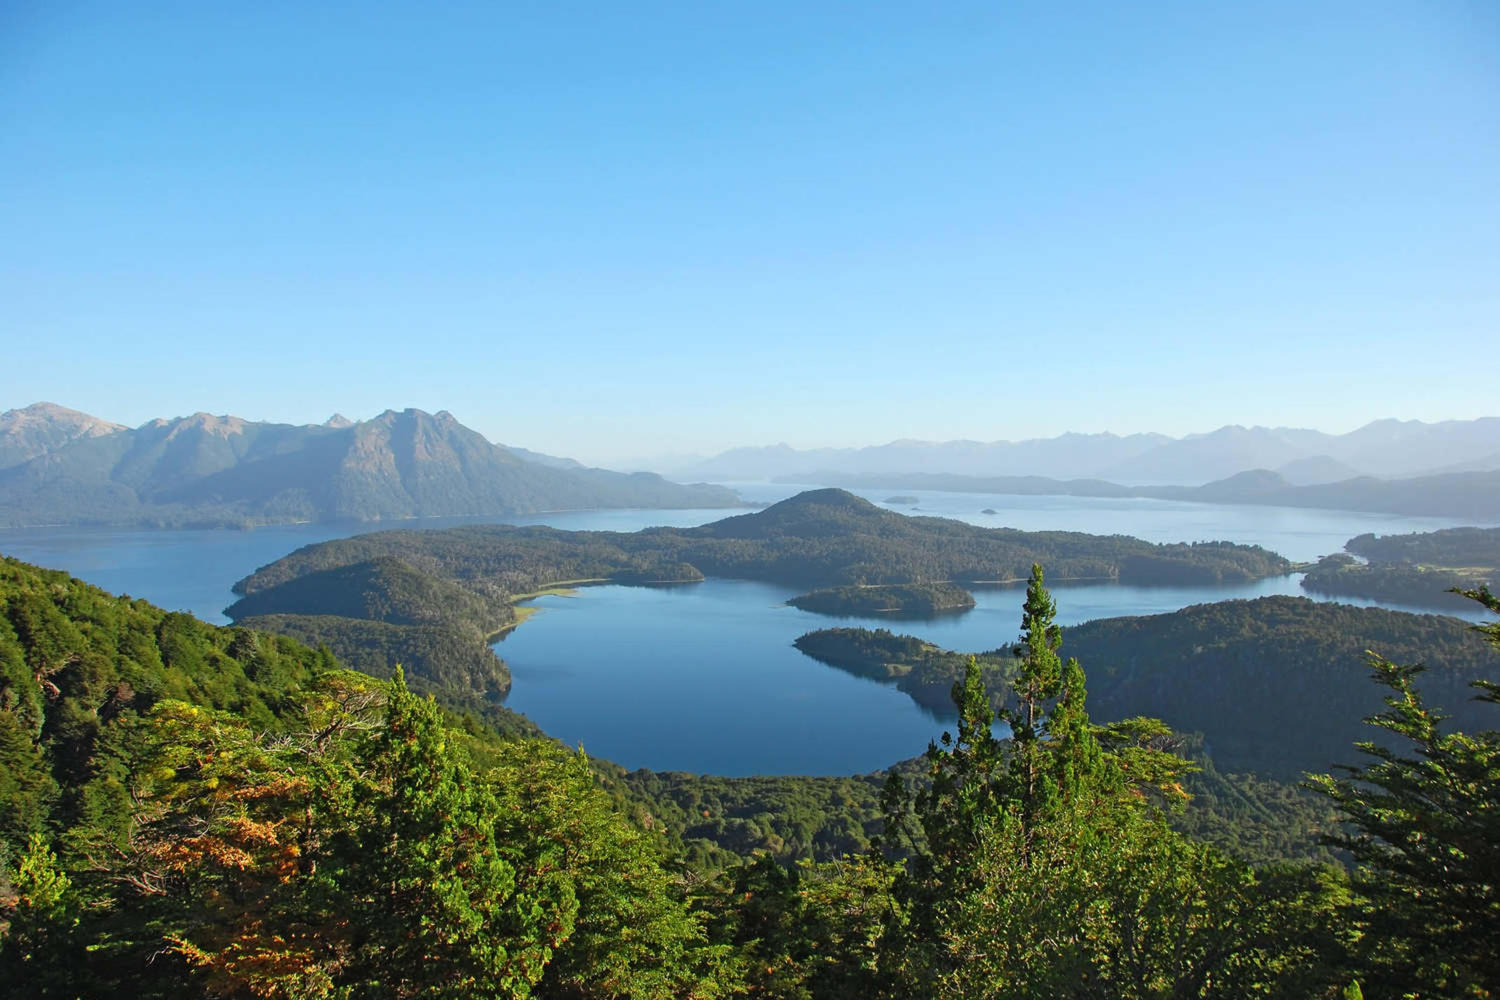 Lovely view of lake in Bariloche